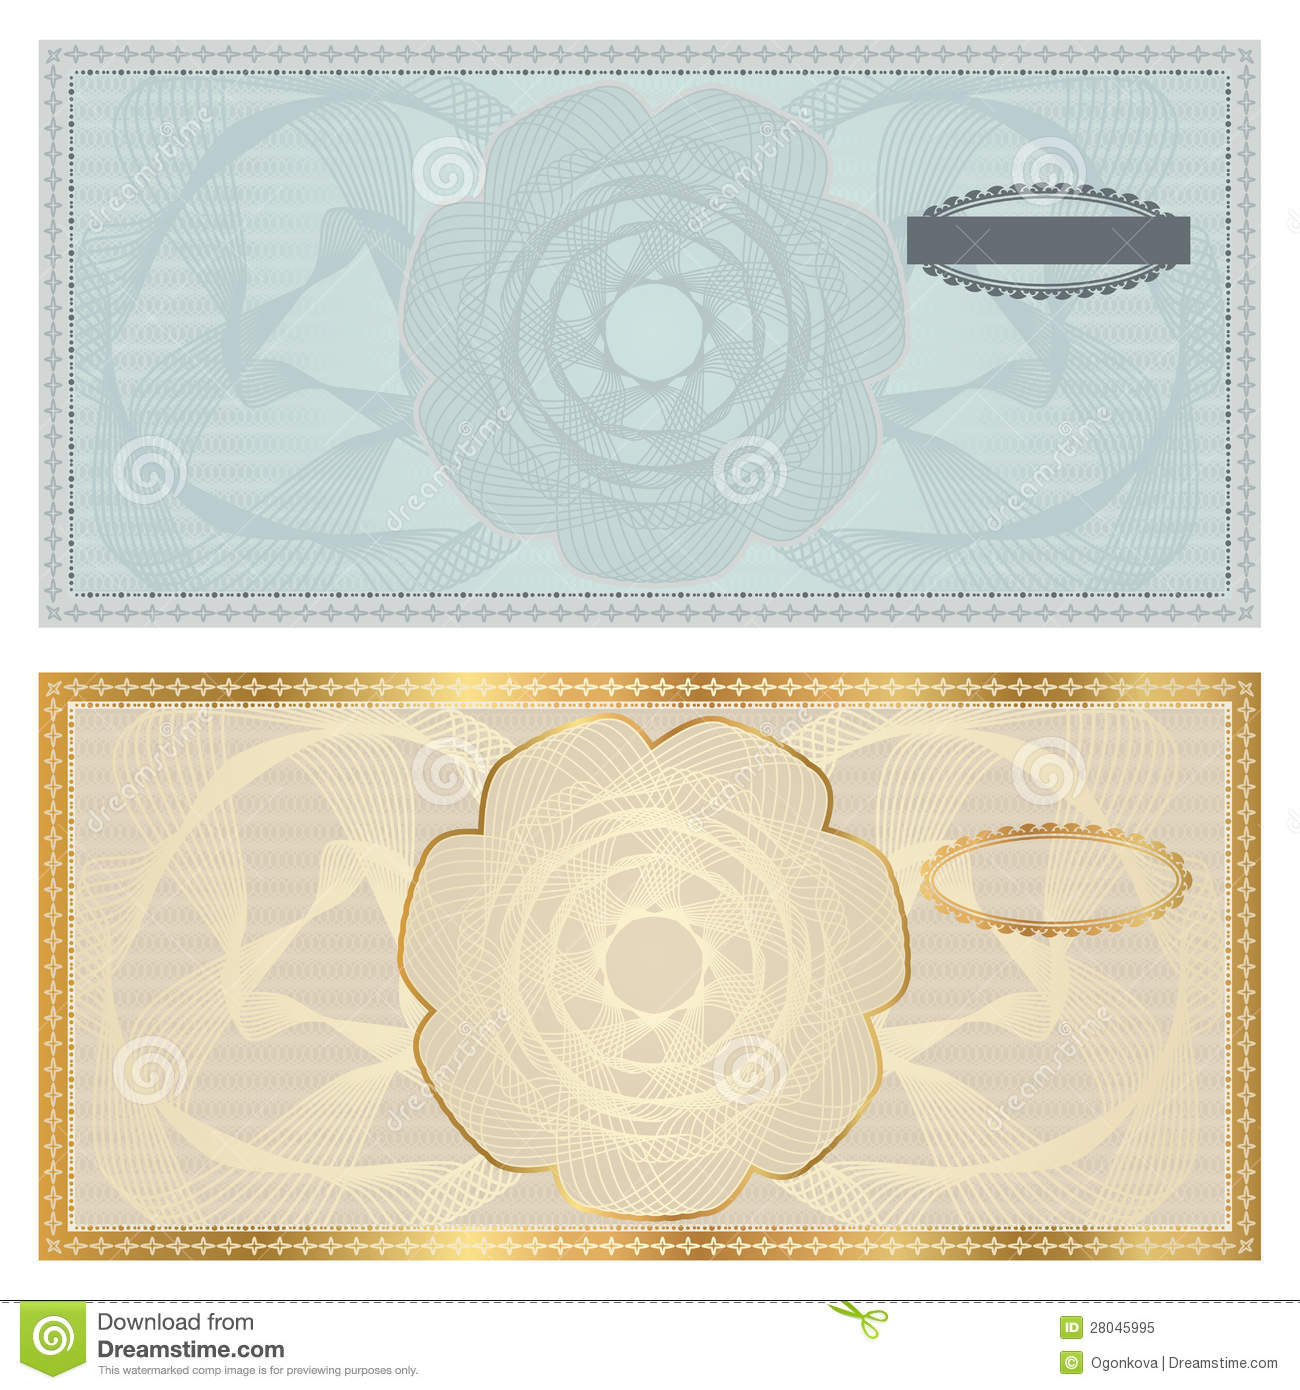 Voucher (Gift Certificate, Coupon) Template  Prize Voucher Template